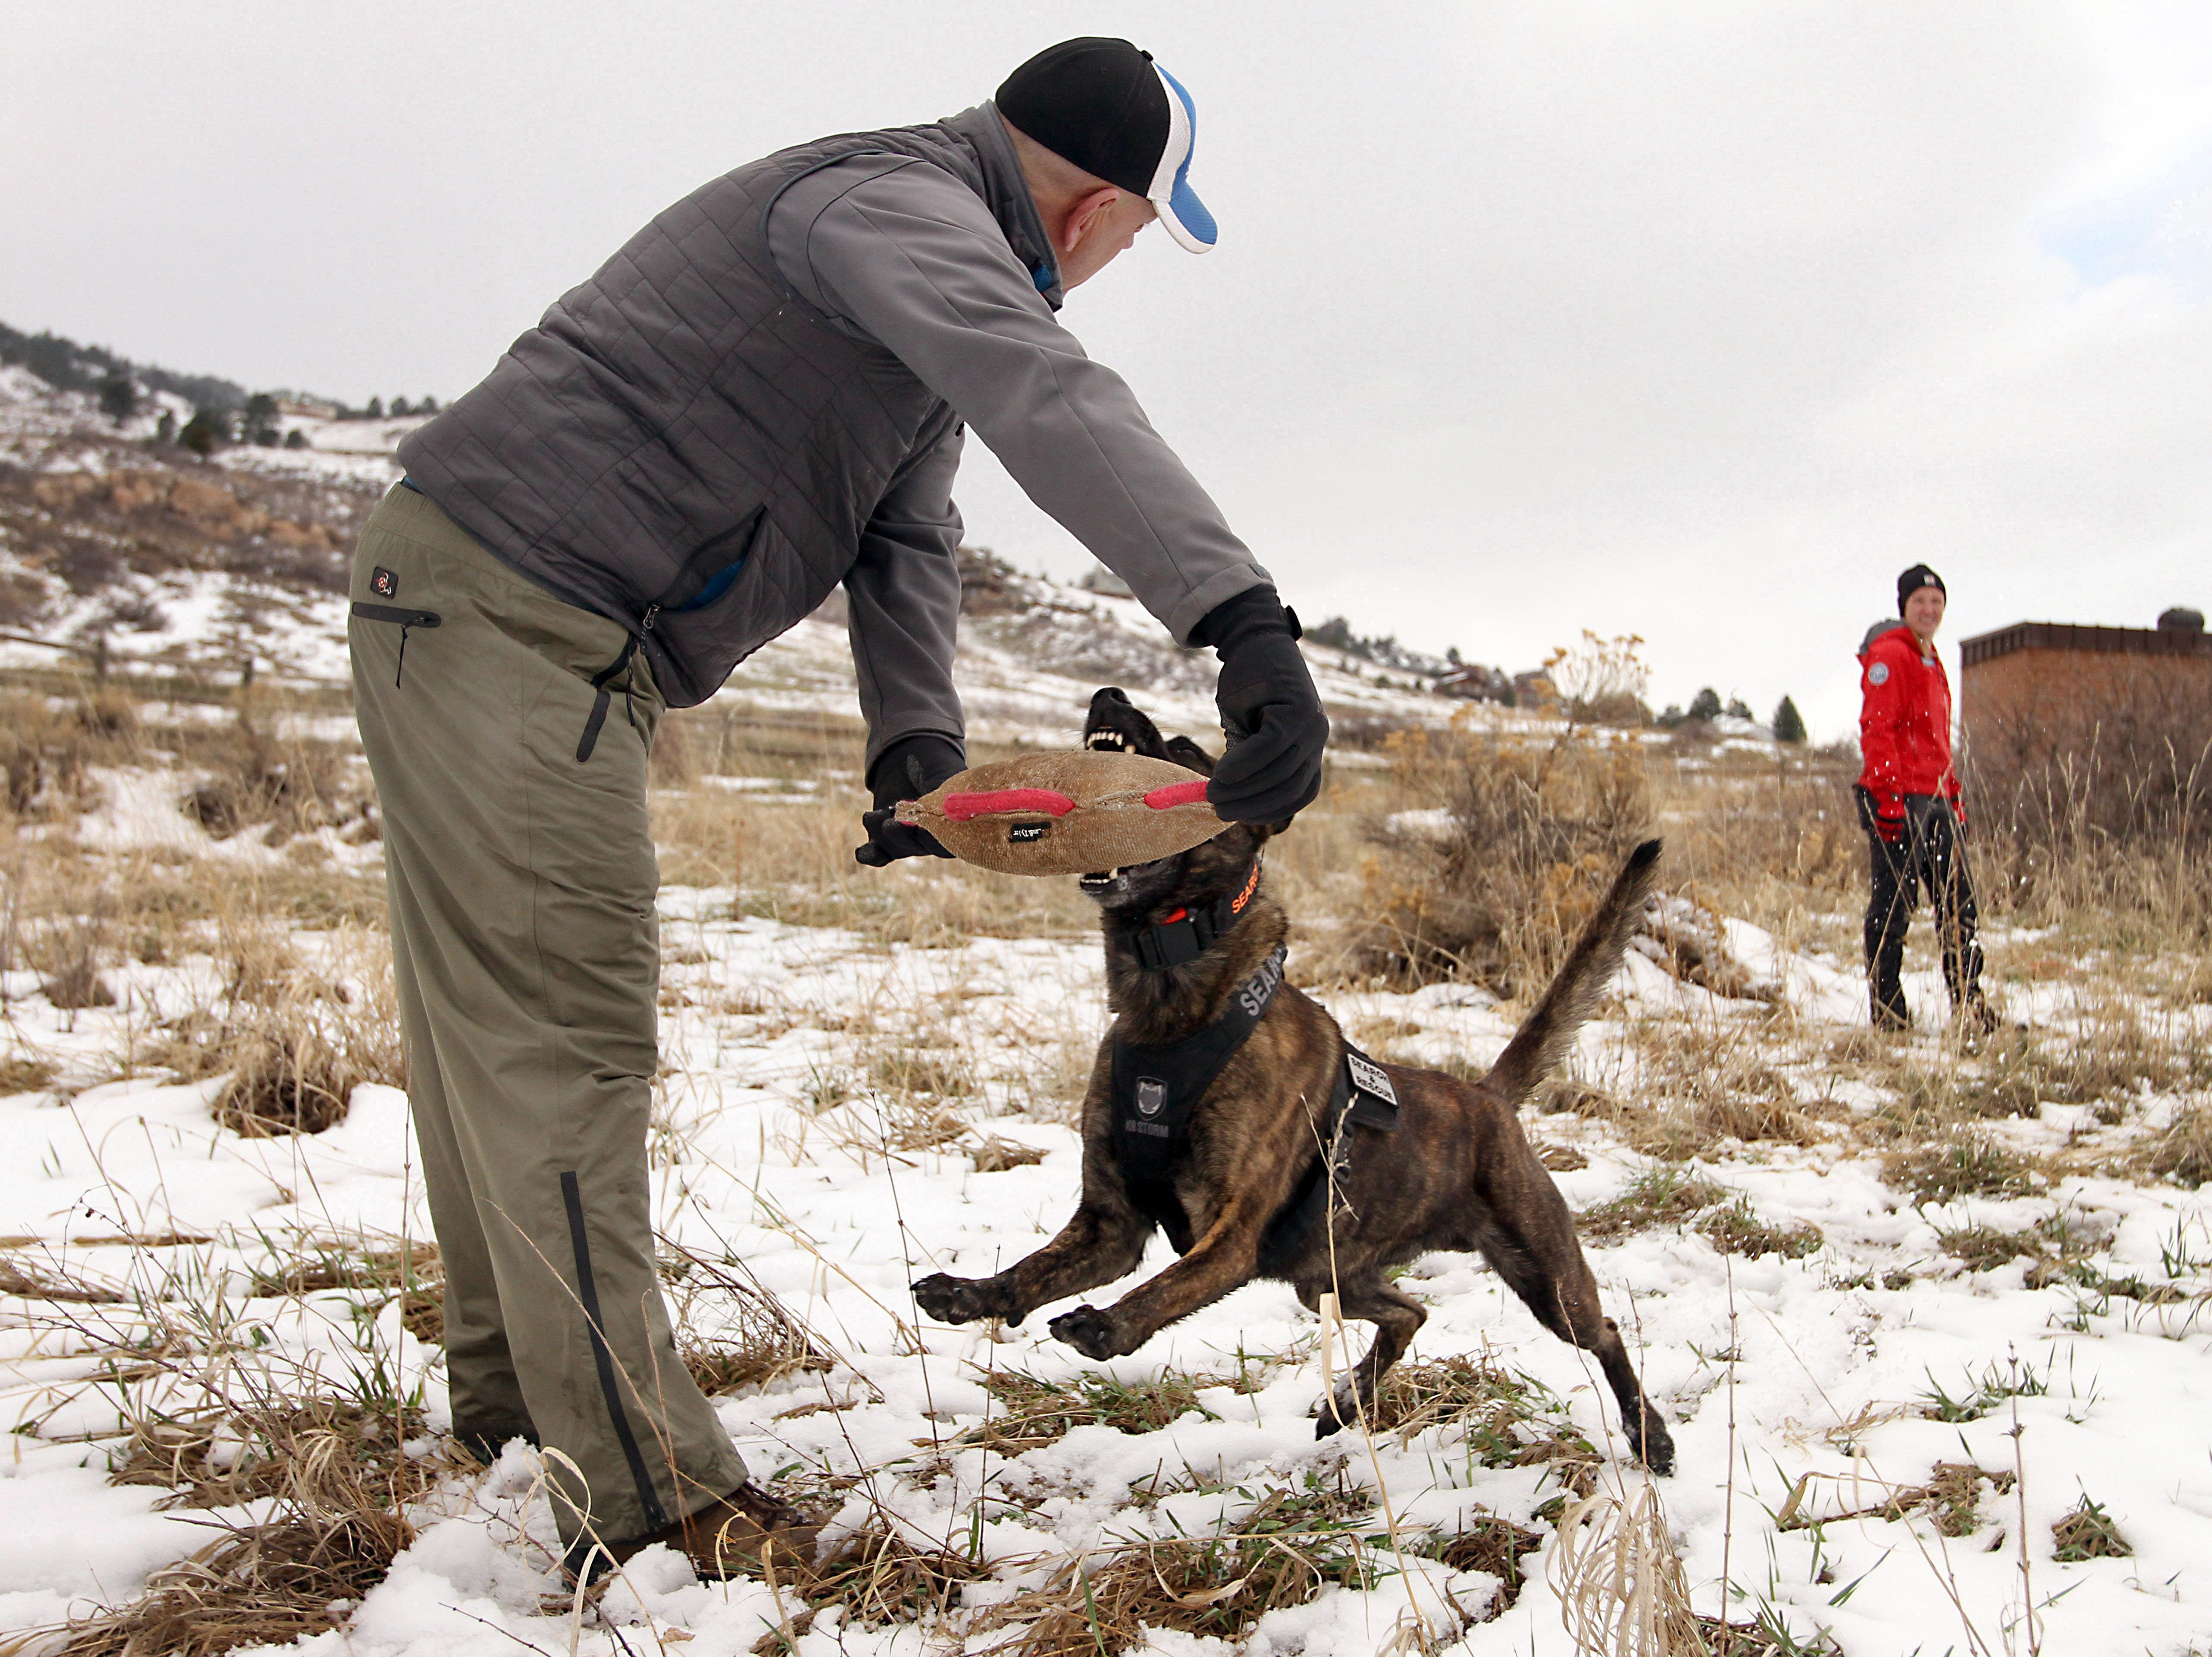 Jay Rigdon, foreground, a member of the Montrose County Sheriffs office and West Elk Mountain Rescue team, holds a tug-upon as a reward for Jupiter, a Larimer County Search and Rescue team member who works with Mary Babbitt, far right, during a training event held at Lory State Park on Saturday, April 13, 2019.